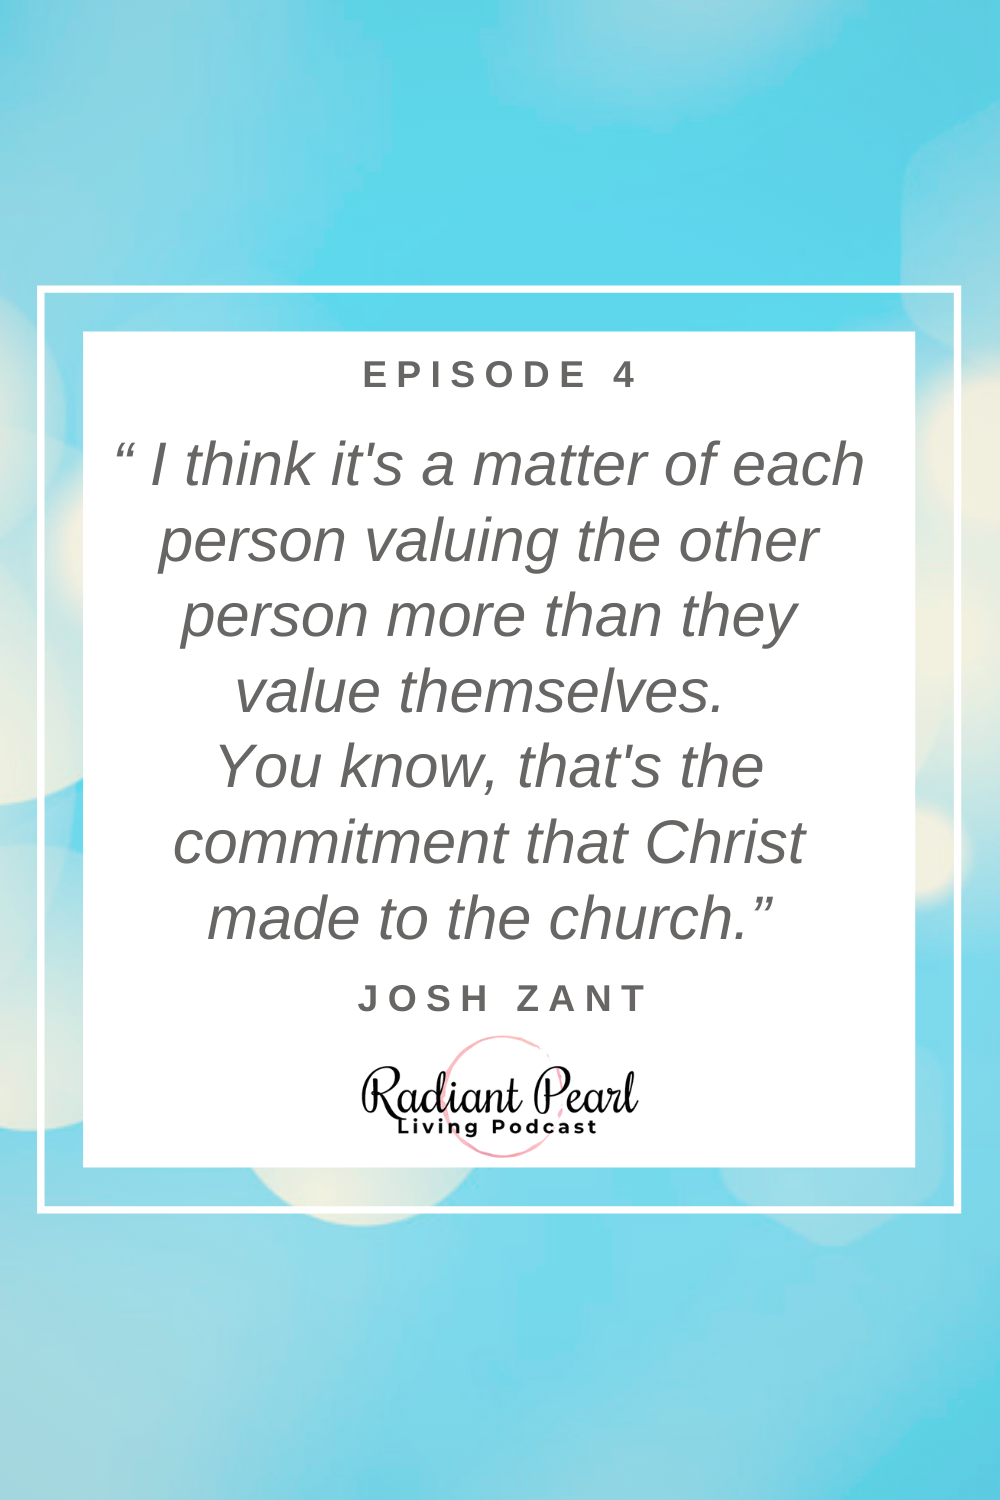 Quote on marriage and priorities from Episode 4 of RPL Live Podcast.